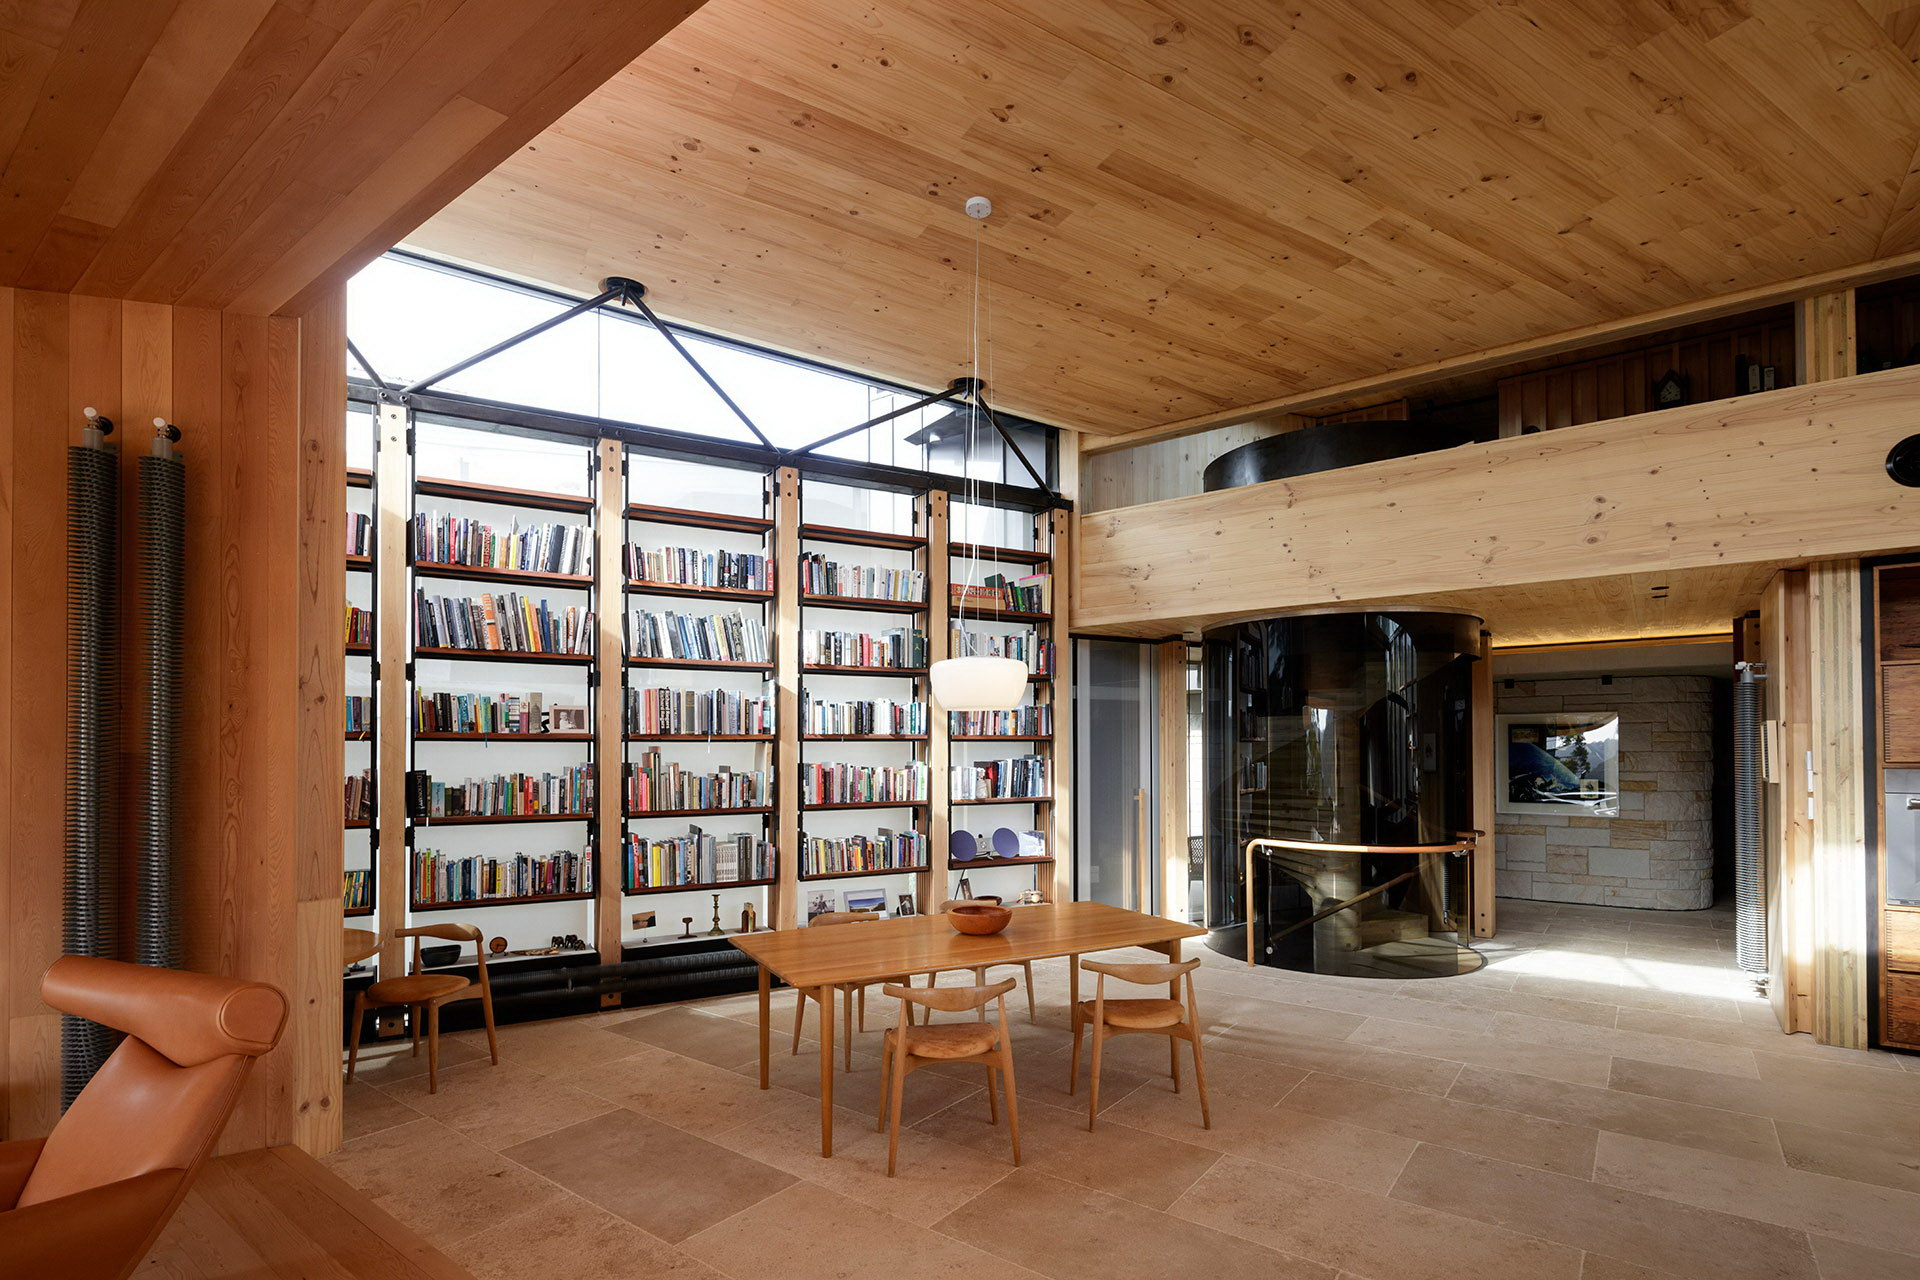 The Seed House by Fitzpatrick+Partners